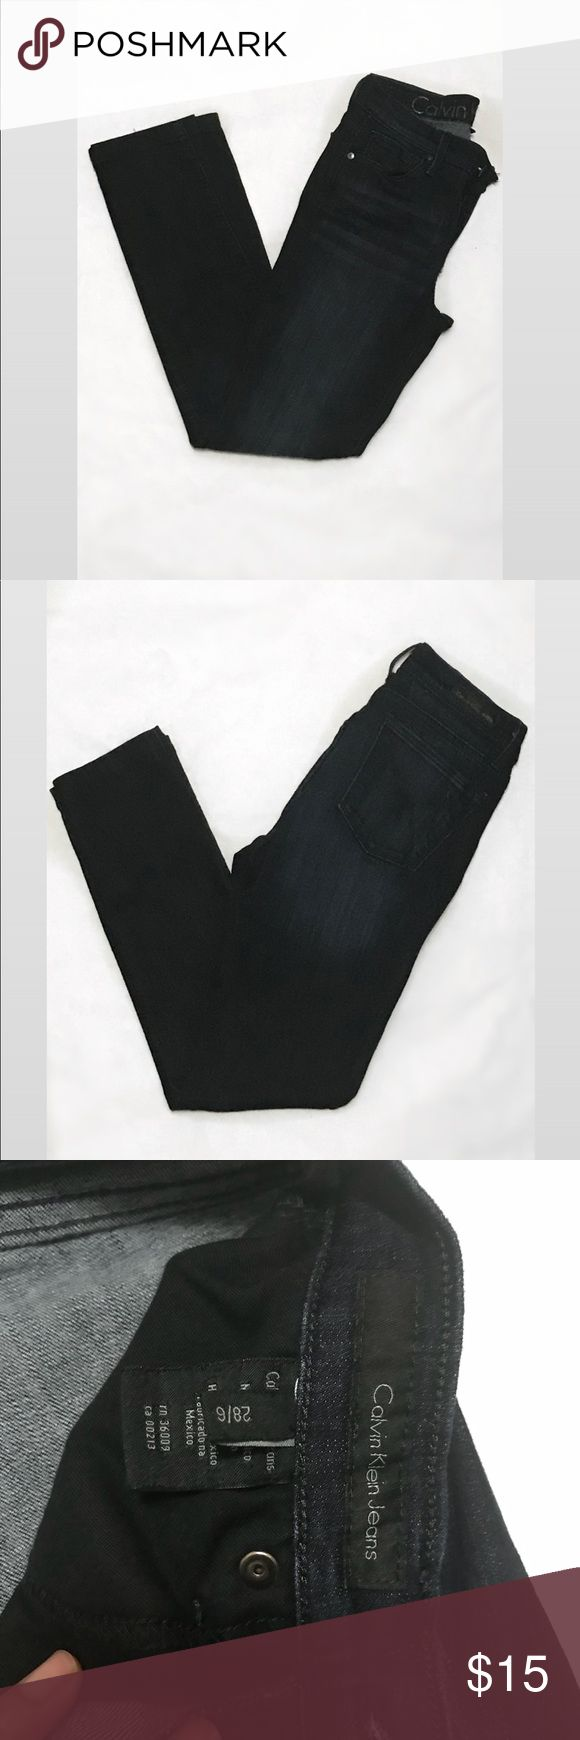 """CALVIN KLEIN- Ultimate Skinny Jeans EUC- Dark Wash Jeans With Factory Fade On Thigh. Style: Ultimate Skinny. Fly Zip With Button Closure. 5 Pockets. Measurements taken while garment laying flat: Waist 12"""", Inseam 27 1/2"""", Rise 9. 1/2"""" Calvin Klein Jeans Skinny"""